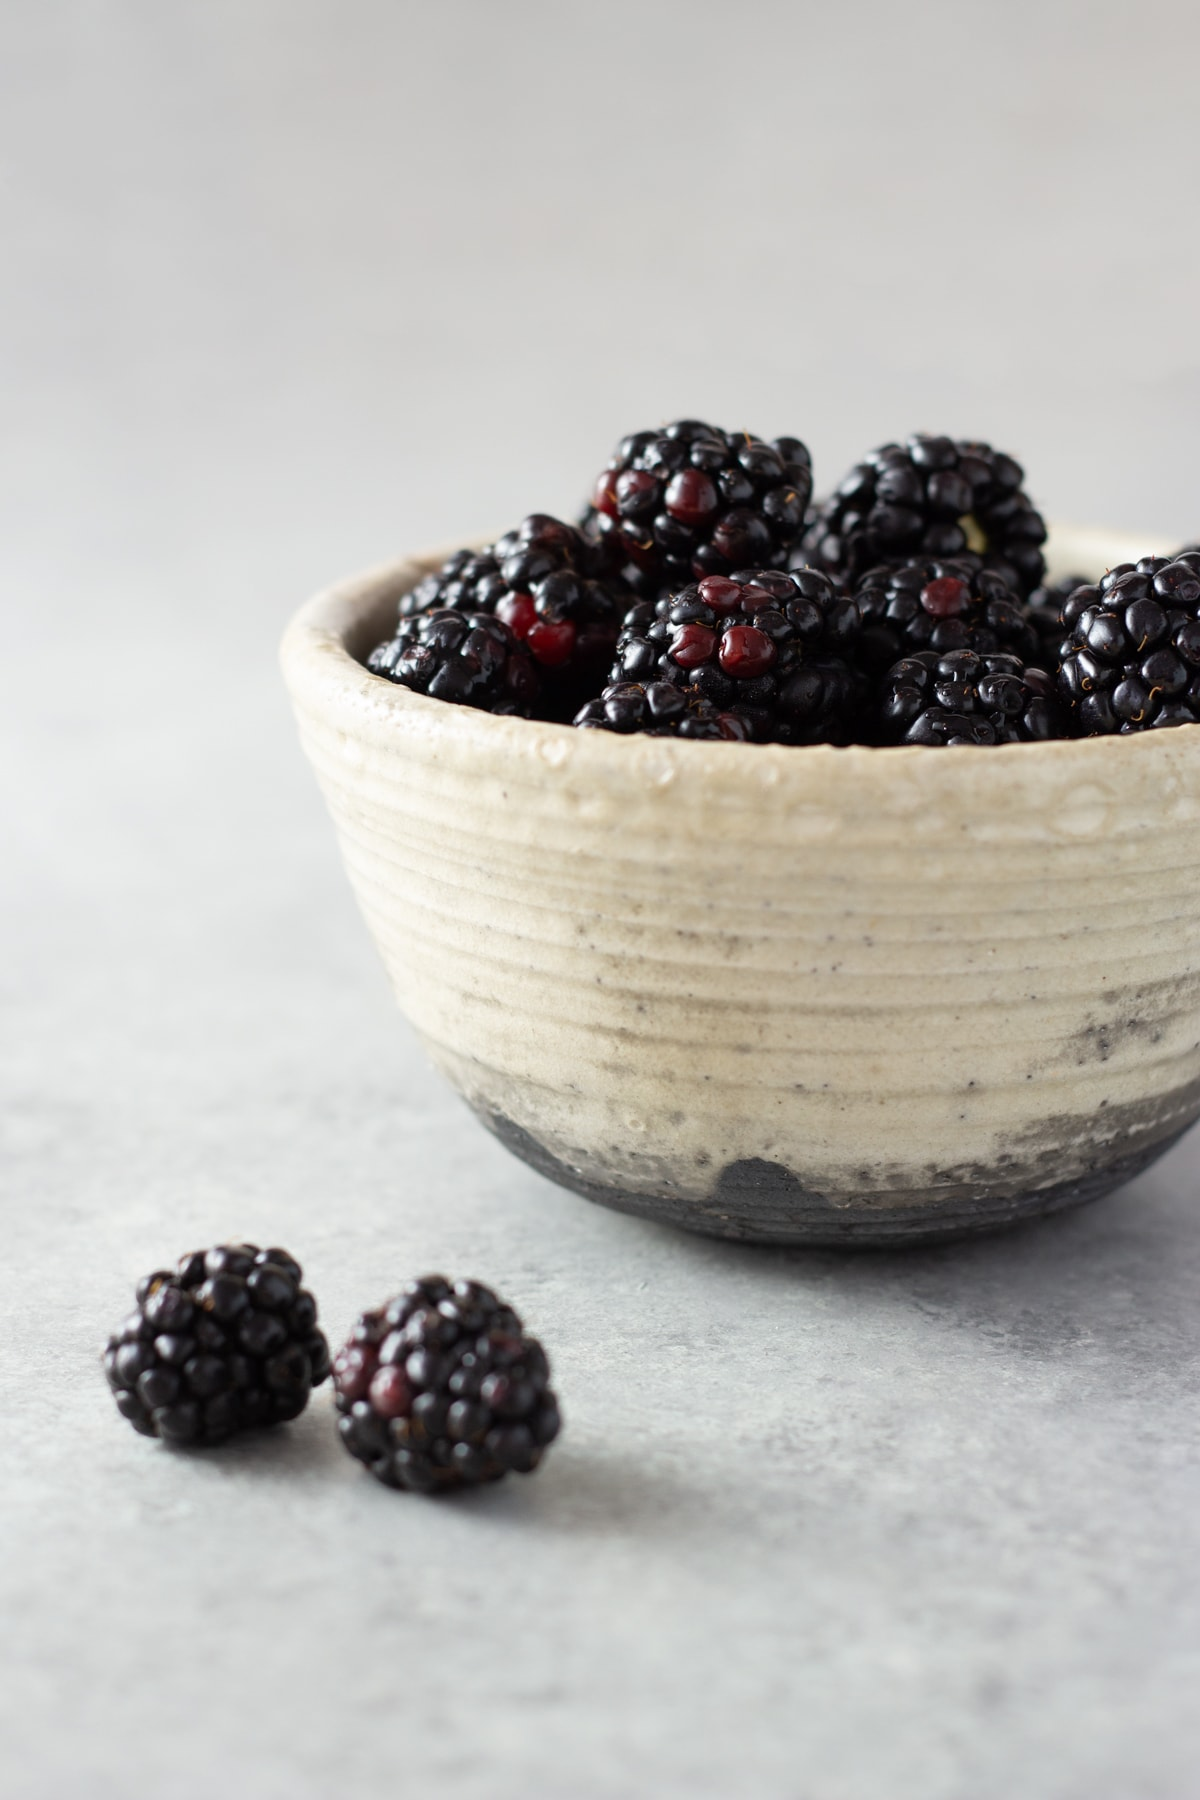 Straight on shot of a rustic bowl filled with fresh blackberries on a light grey surface.